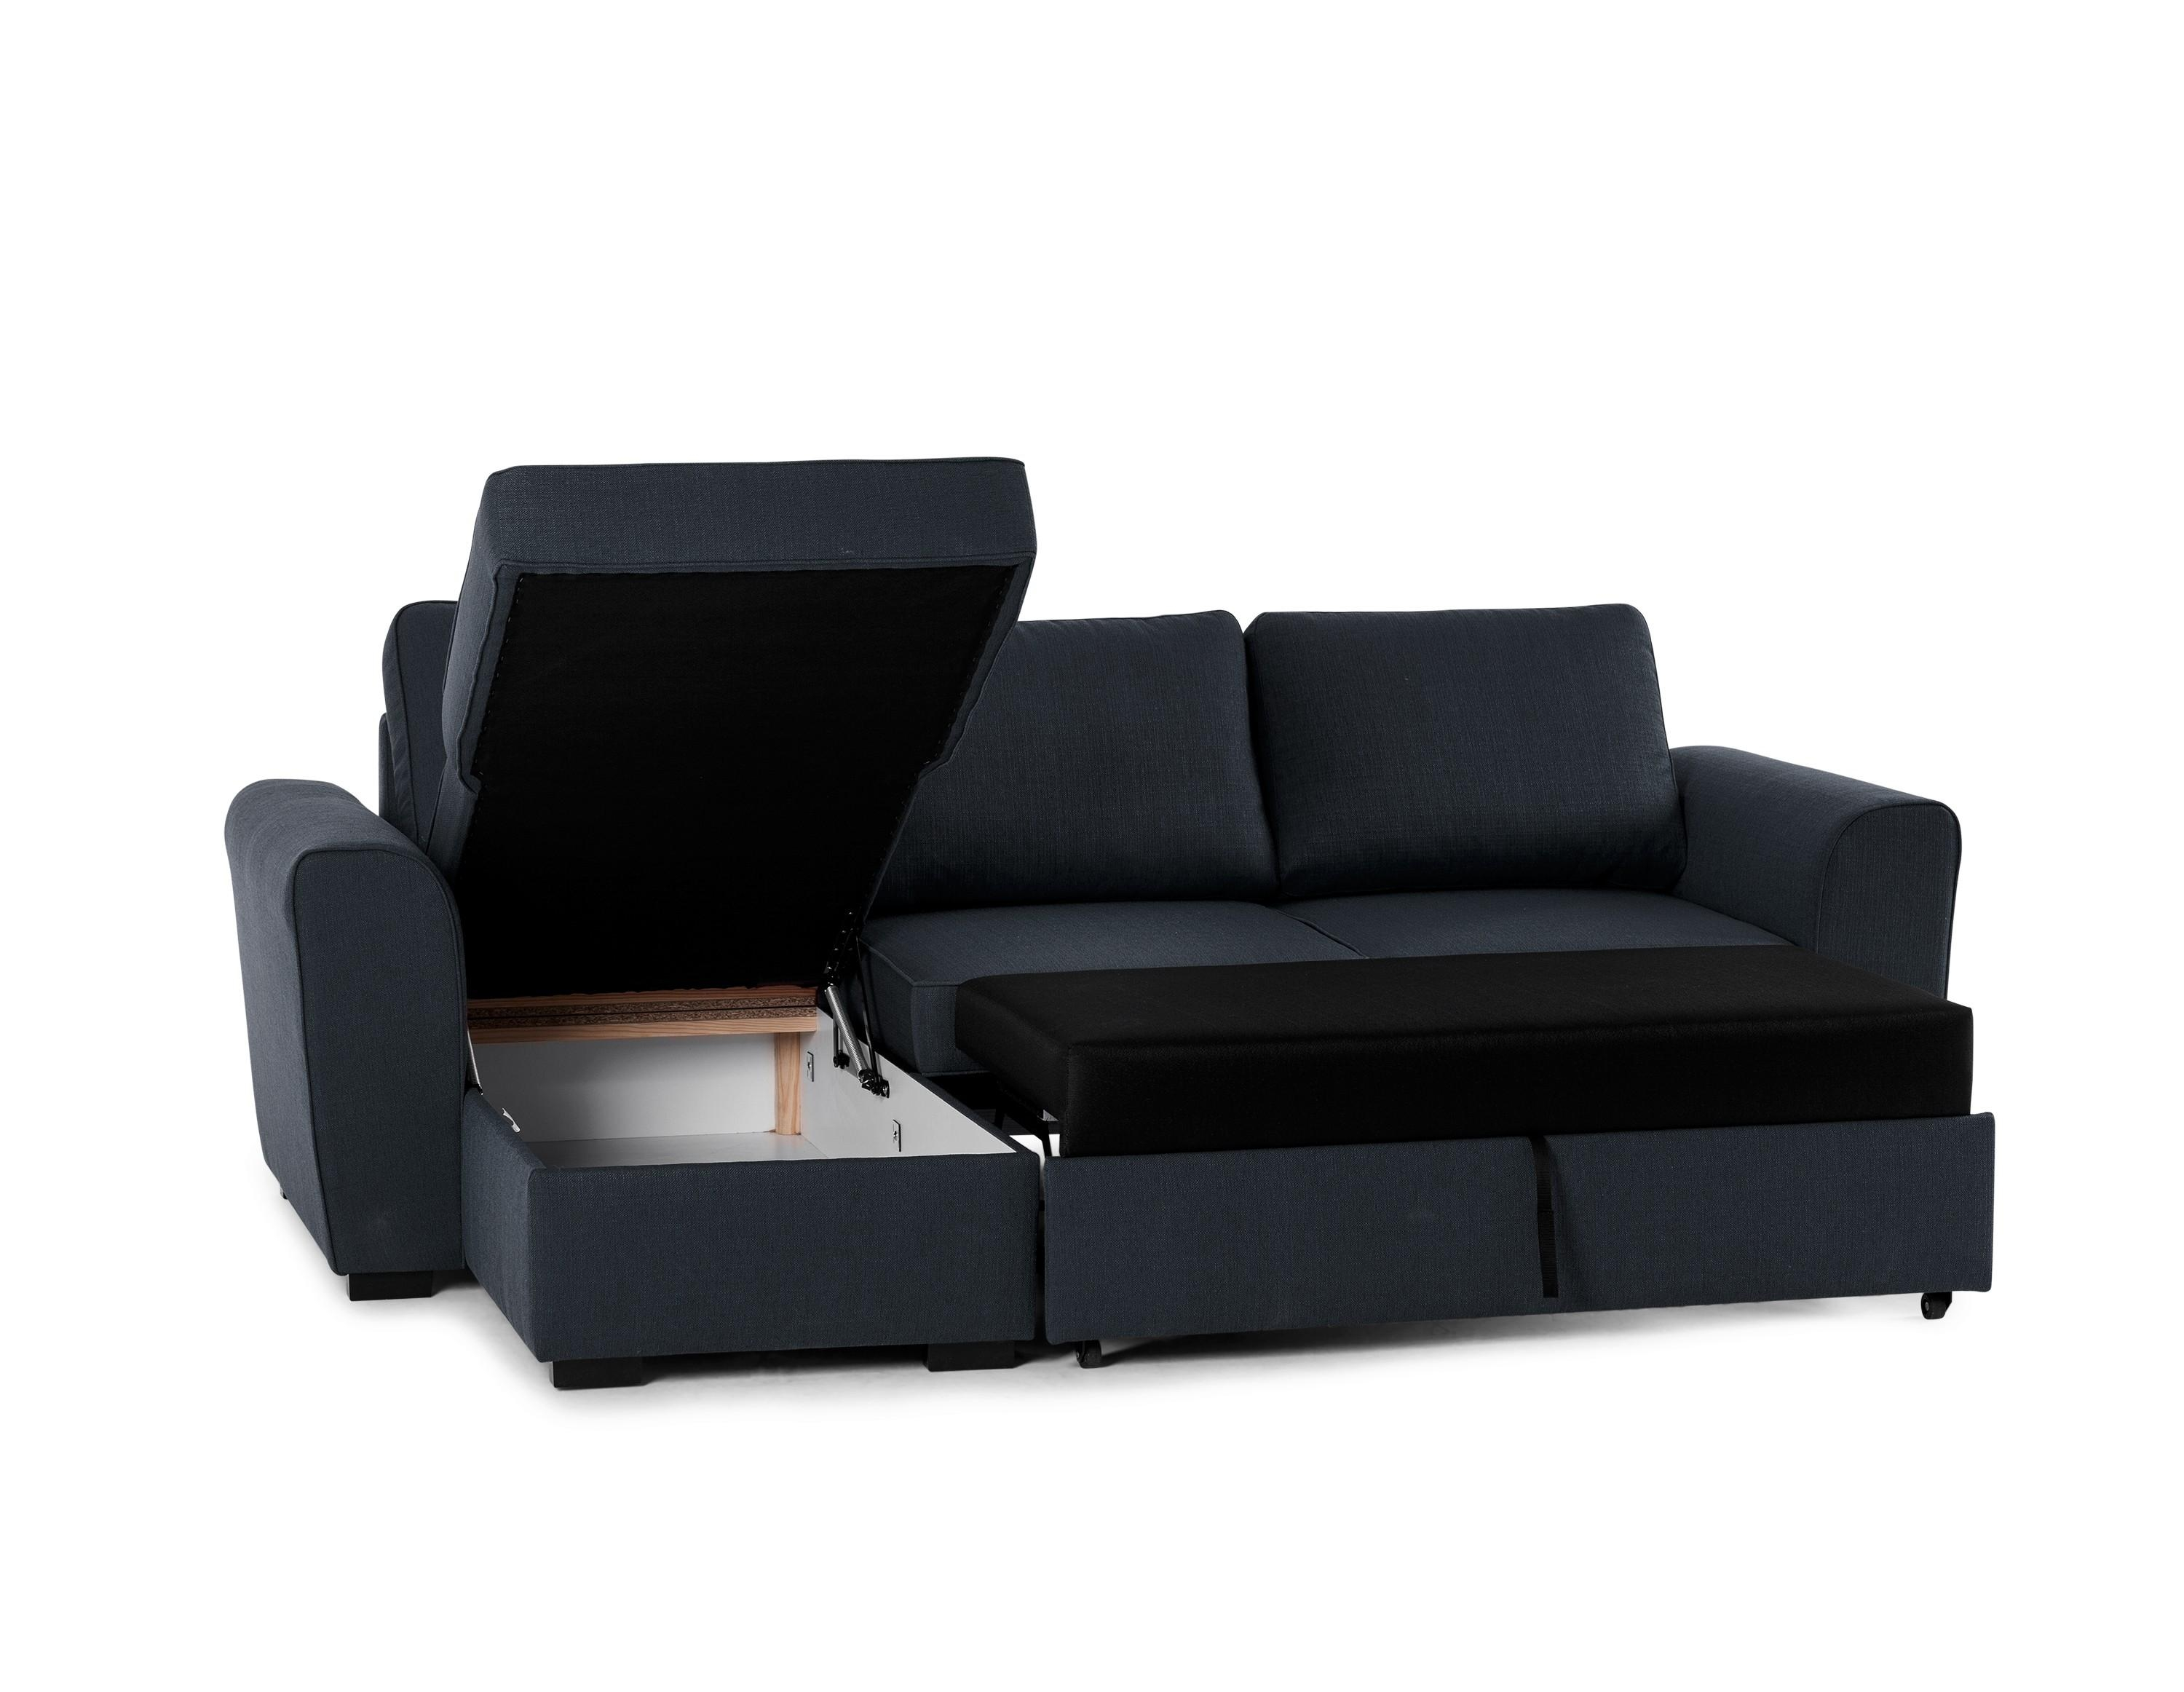 Sofa: Cozy Sears Sofa Bed For Elegant Tufted Sofa Design Ideas With Sofas With Beds (View 9 of 22)